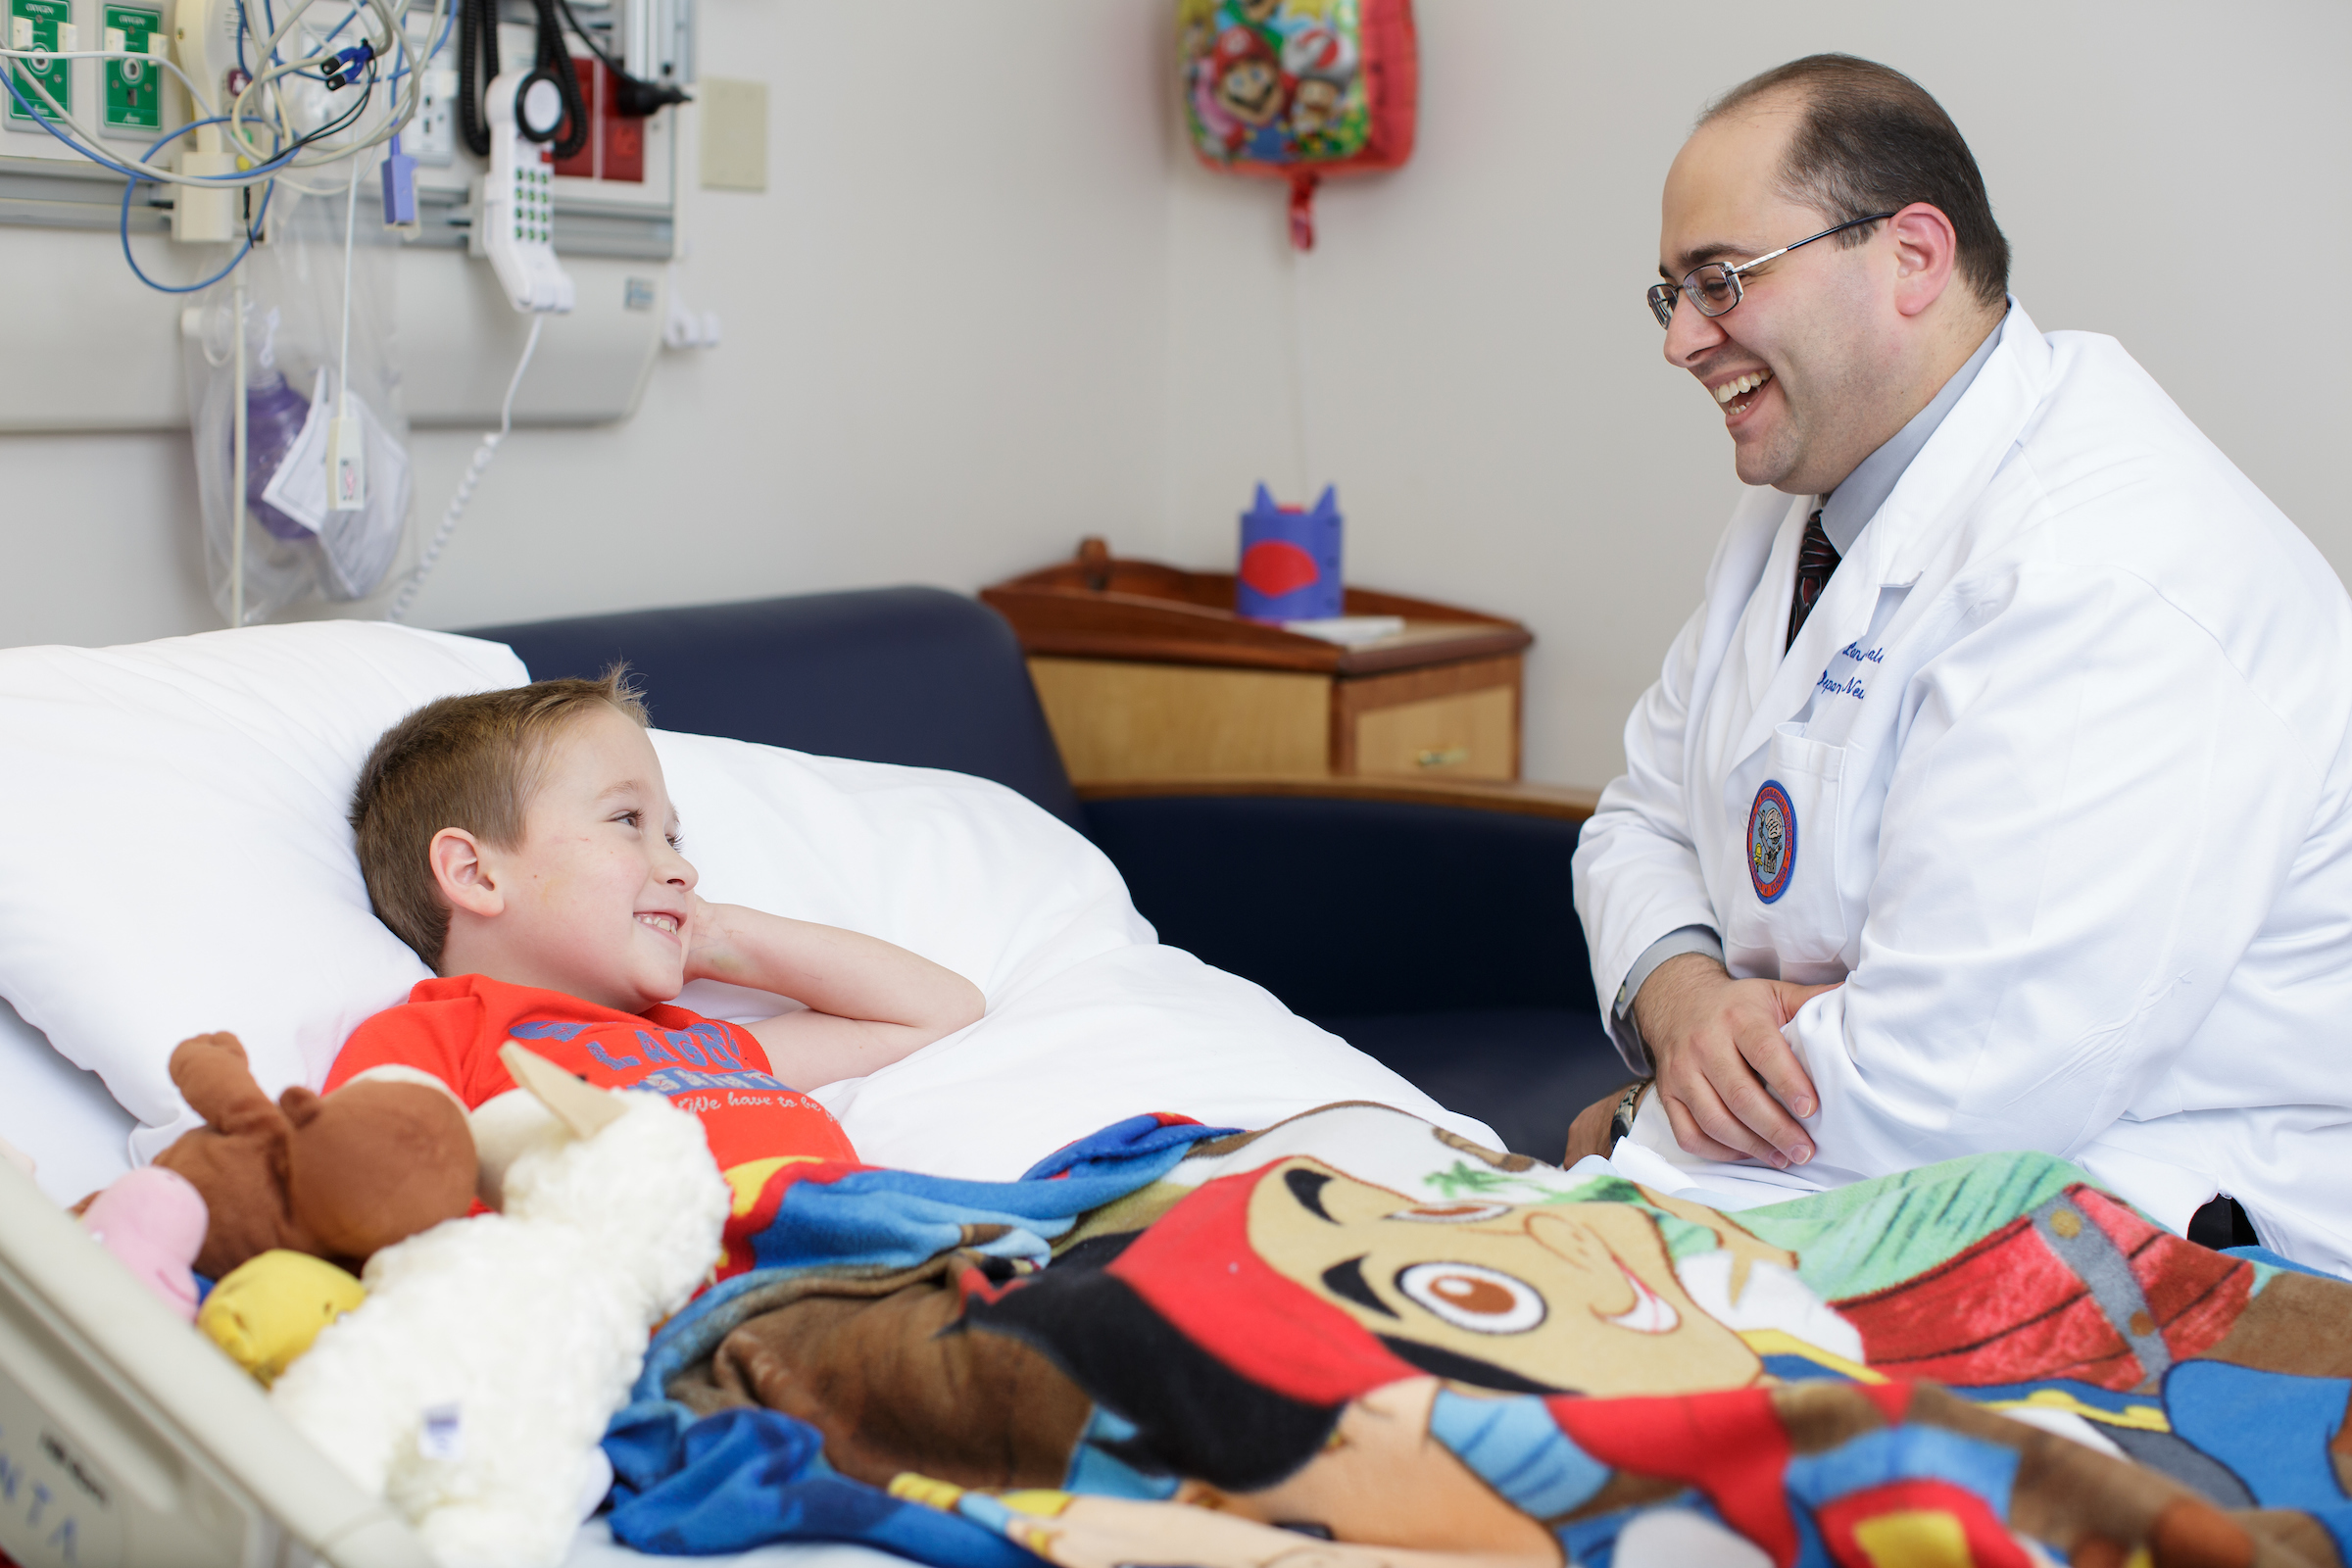 UF Health Children's Hospital neurosurgeon laughs with a young male patient who is lying down in a hospital bed.